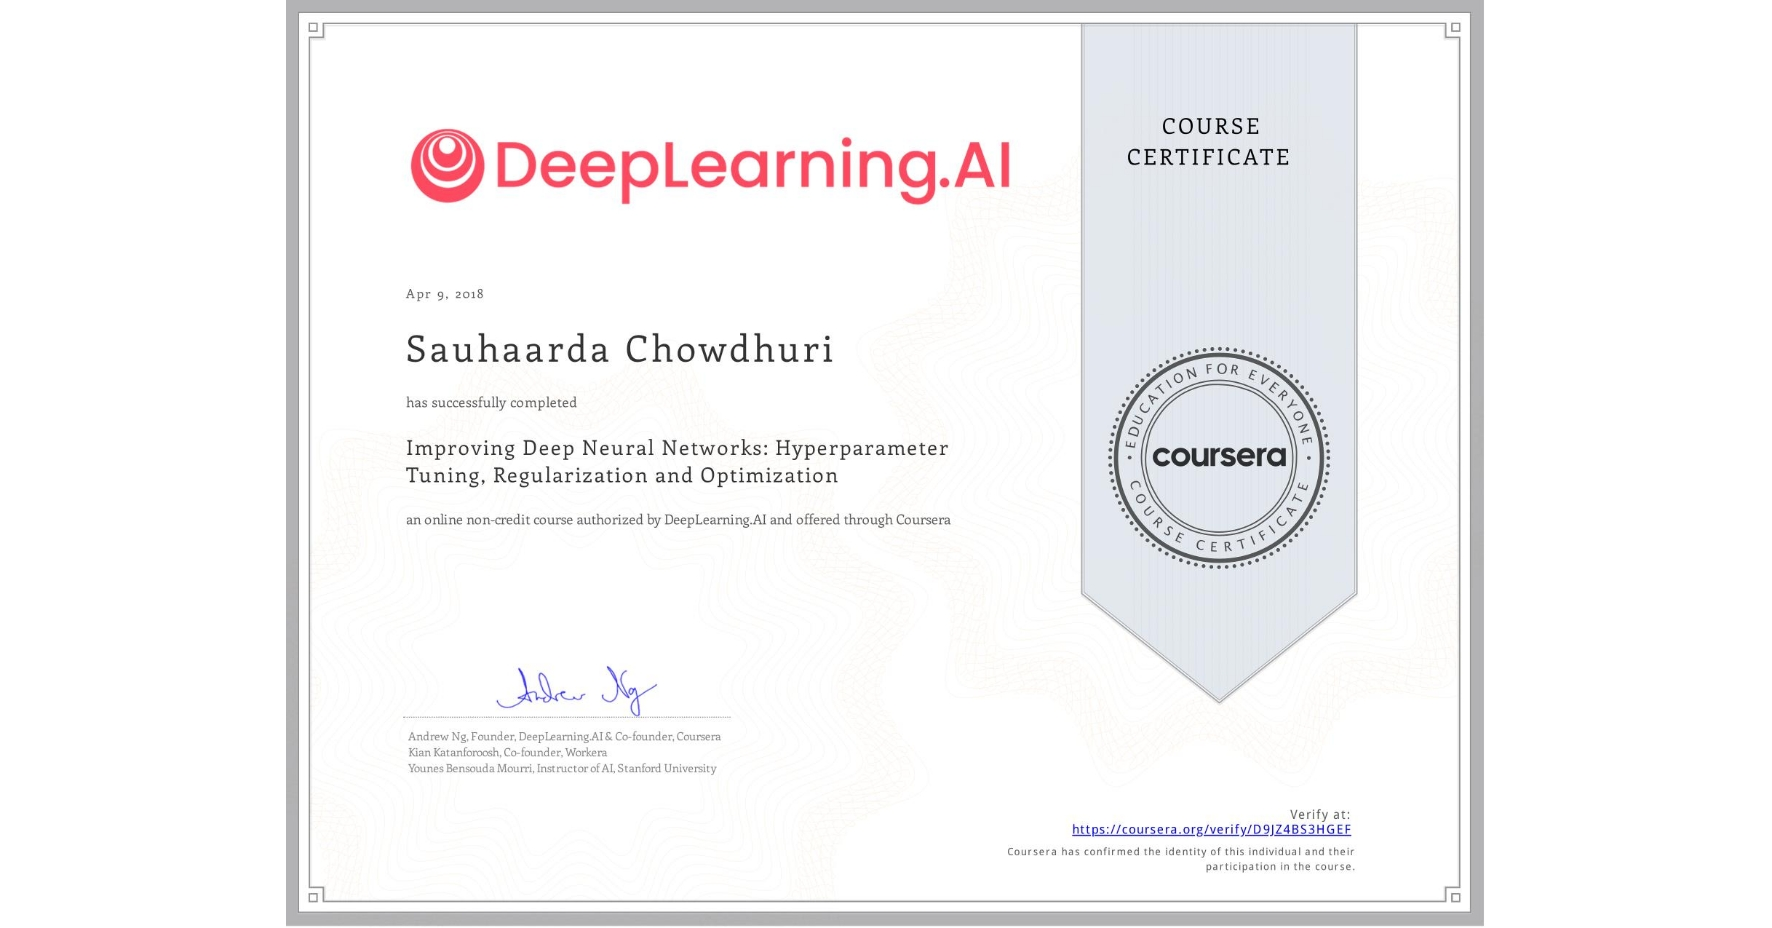 View certificate for Sauhaarda Chowdhuri, Improving Deep Neural Networks: Hyperparameter Tuning, Regularization and Optimization, an online non-credit course authorized by DeepLearning.AI and offered through Coursera